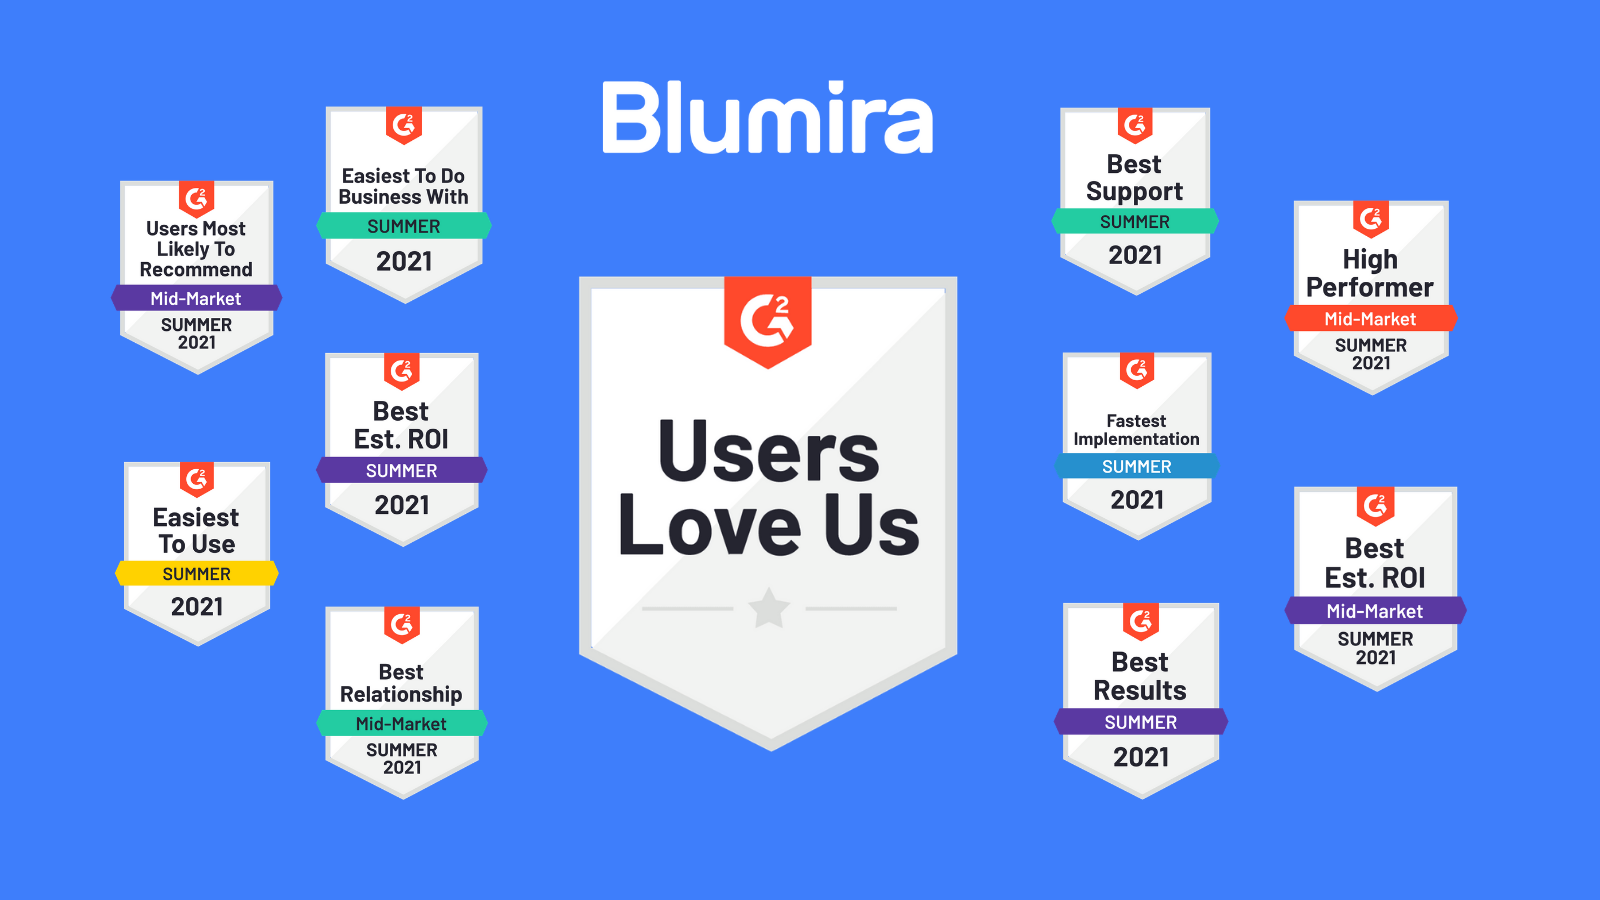 Blumira Earns Top Placements, Including Best ROI in G2 Summer 2021 Reports